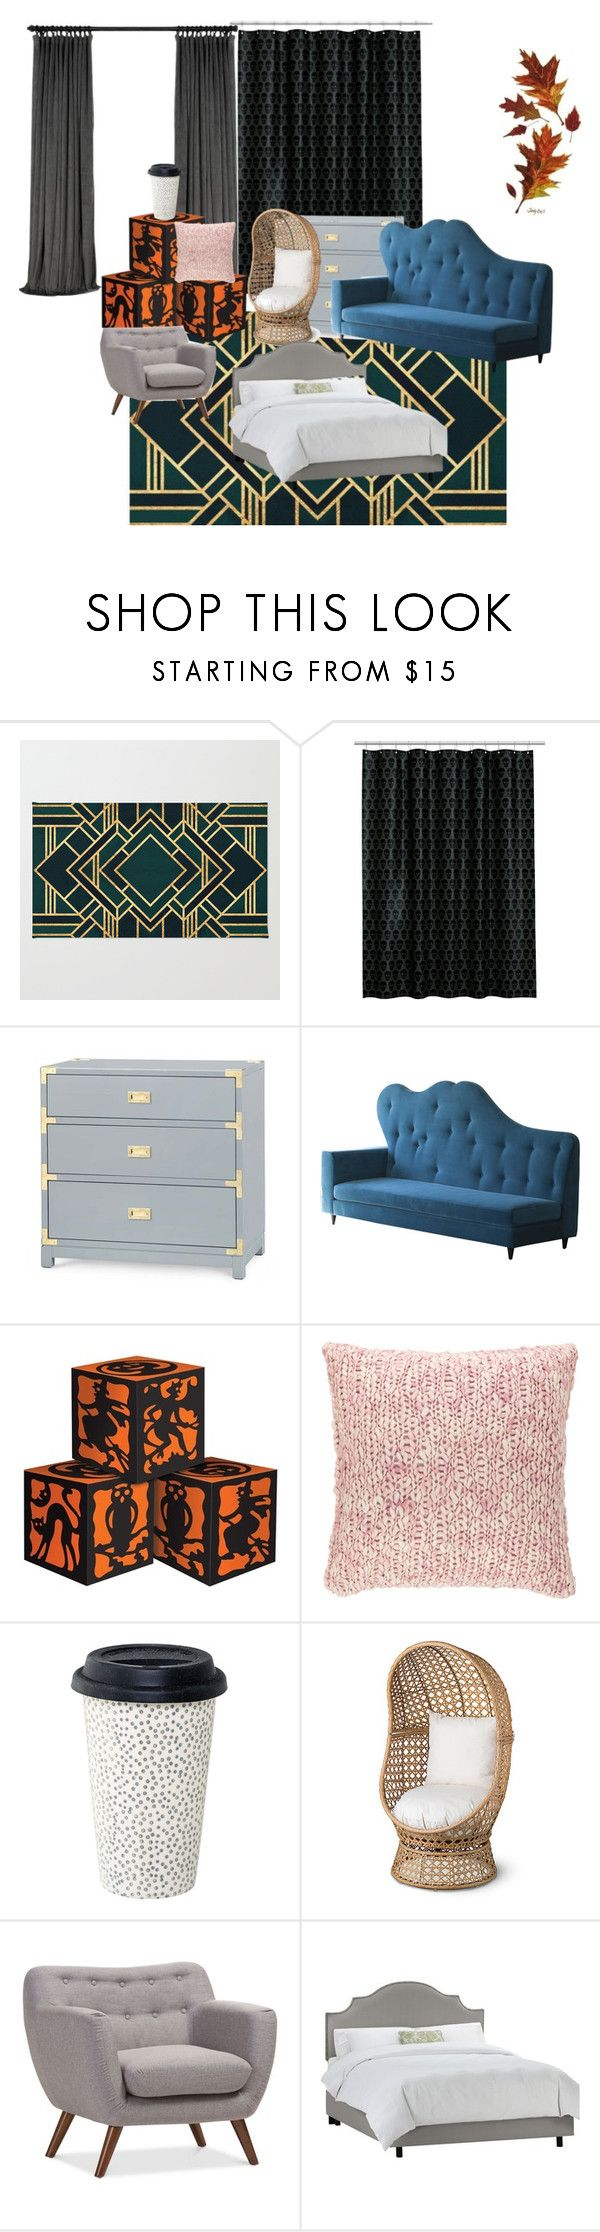 """""""Bez naslova #177"""" by summer670 ❤ liked on Polyvore featuring interior, interiors, interior design, home, home decor, interior decorating, Bungalow 5, Pine Cone Hill and Improvements"""